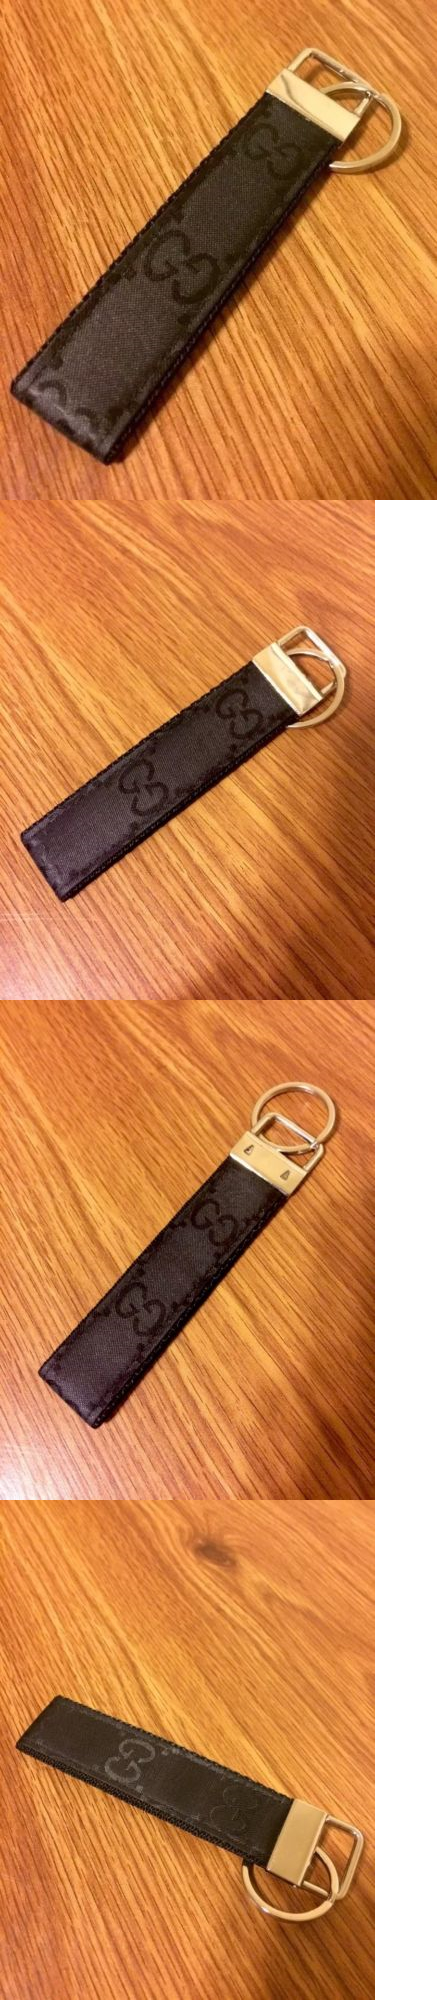 bfd08e2b211 Key Chains 169280  Custom Made Black Gucci Keychain Fob -  BUY IT NOW ONLY    40 on eBay!